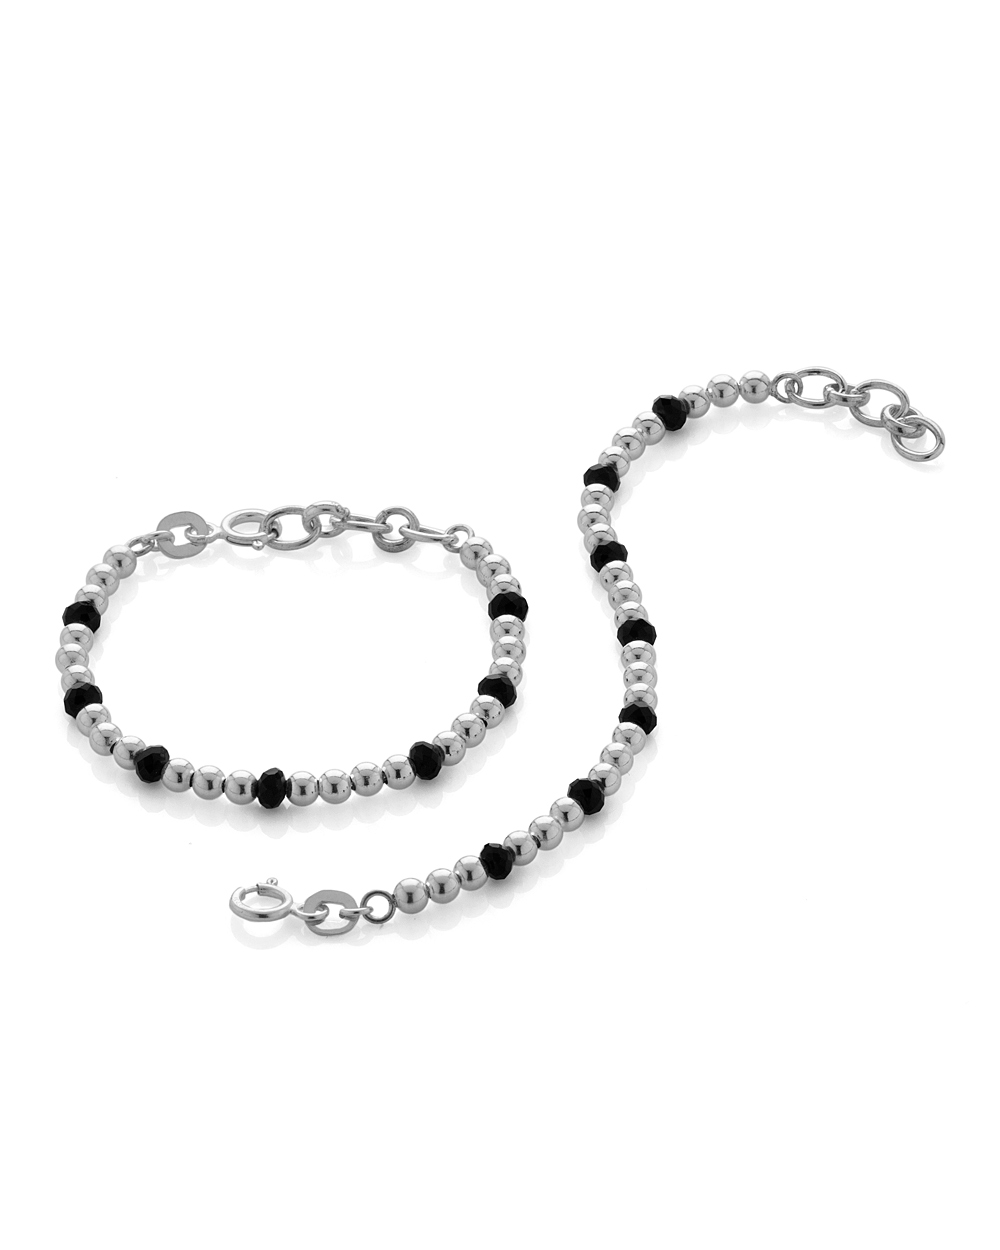 Buy 925 Silver Baby Bracelets With Black Beads Online India | Voylla